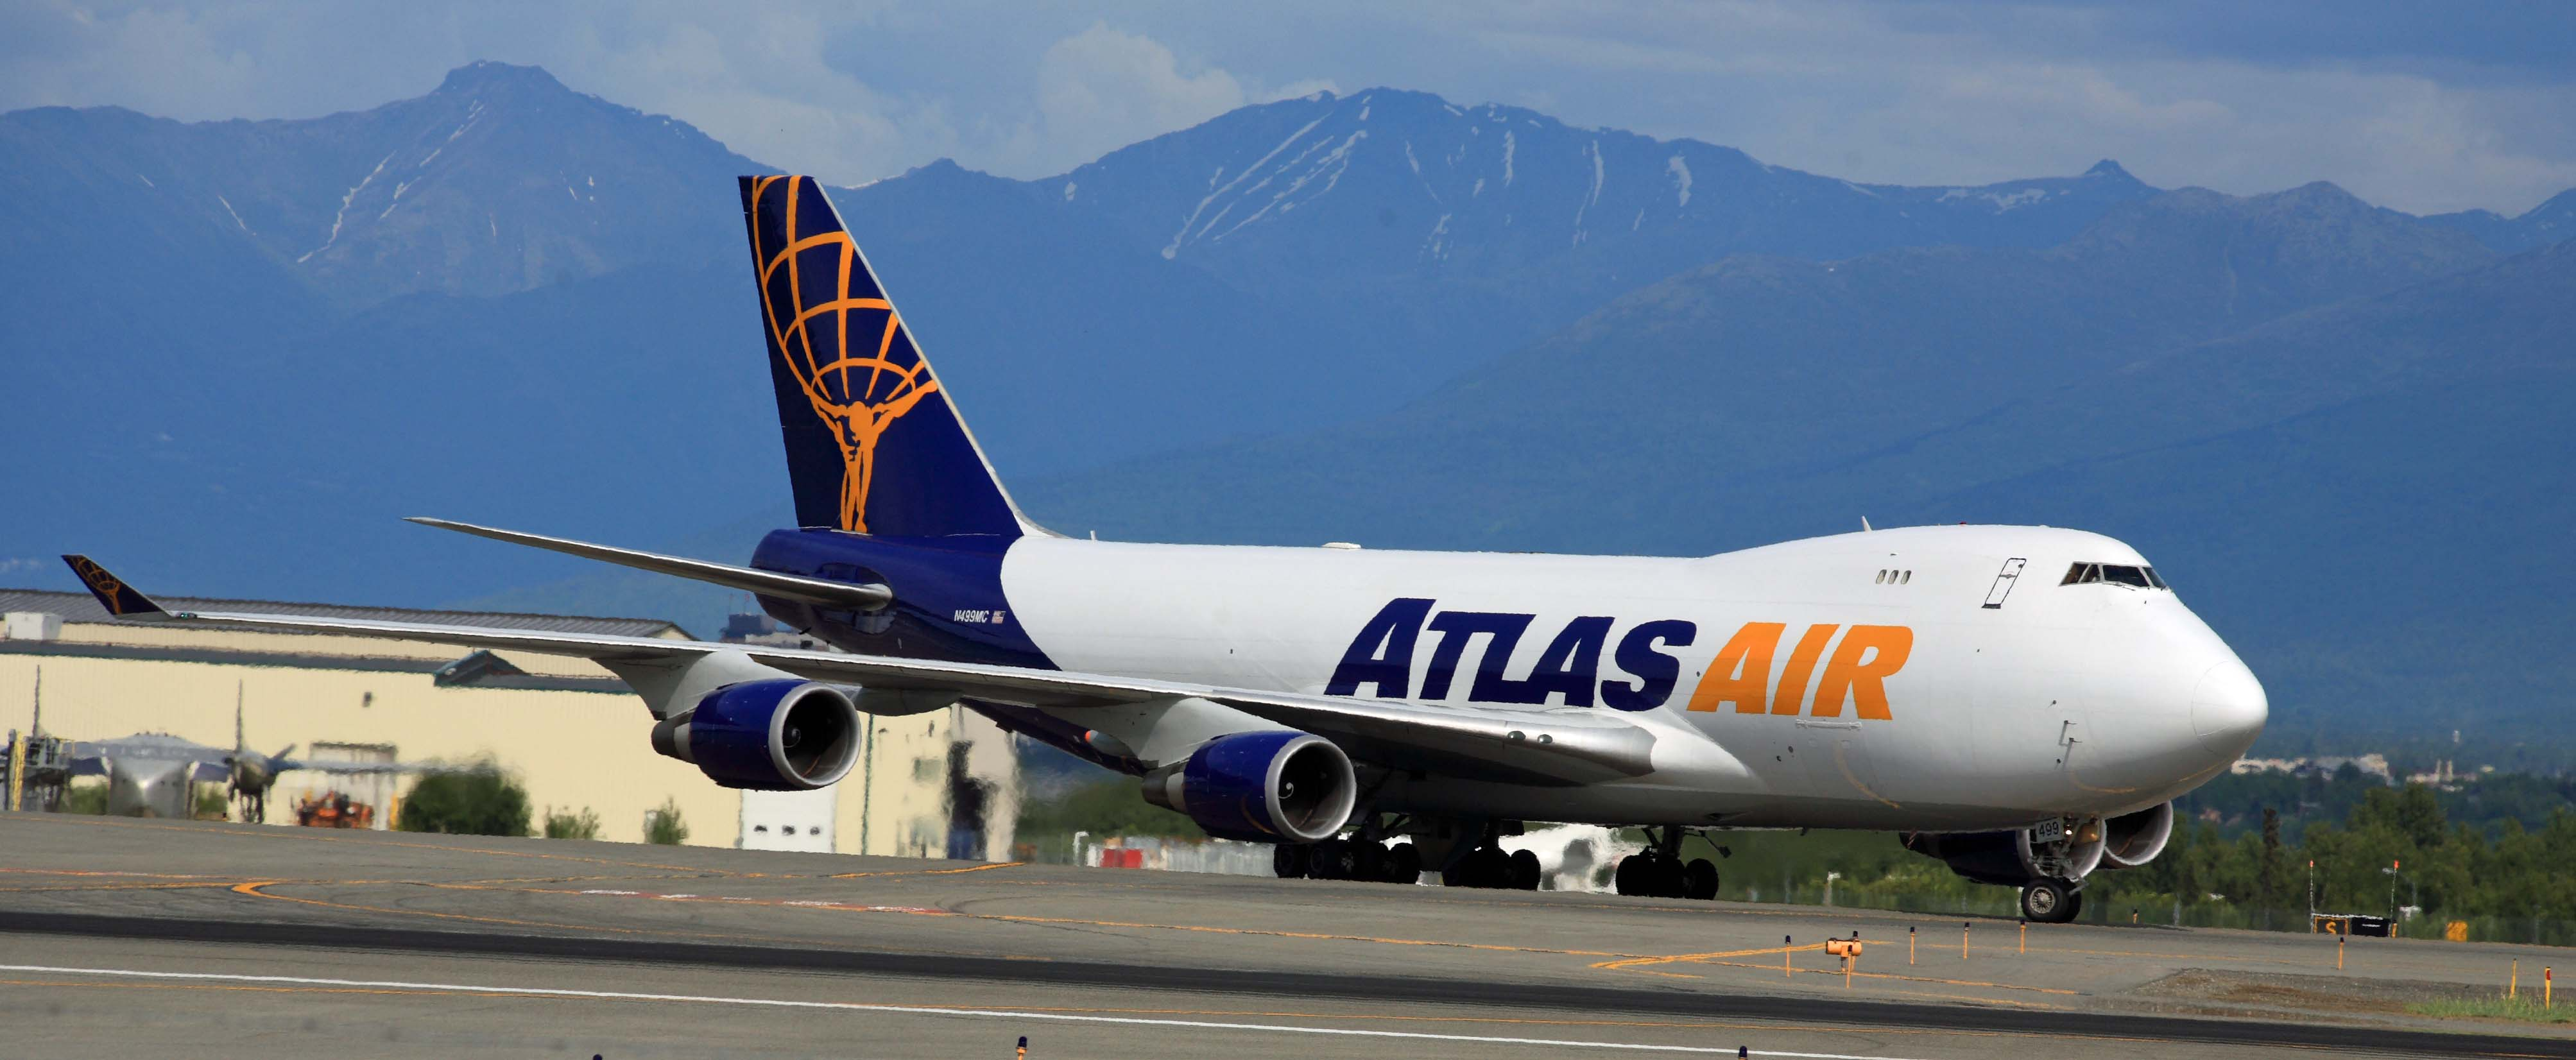 Atlas Travel International